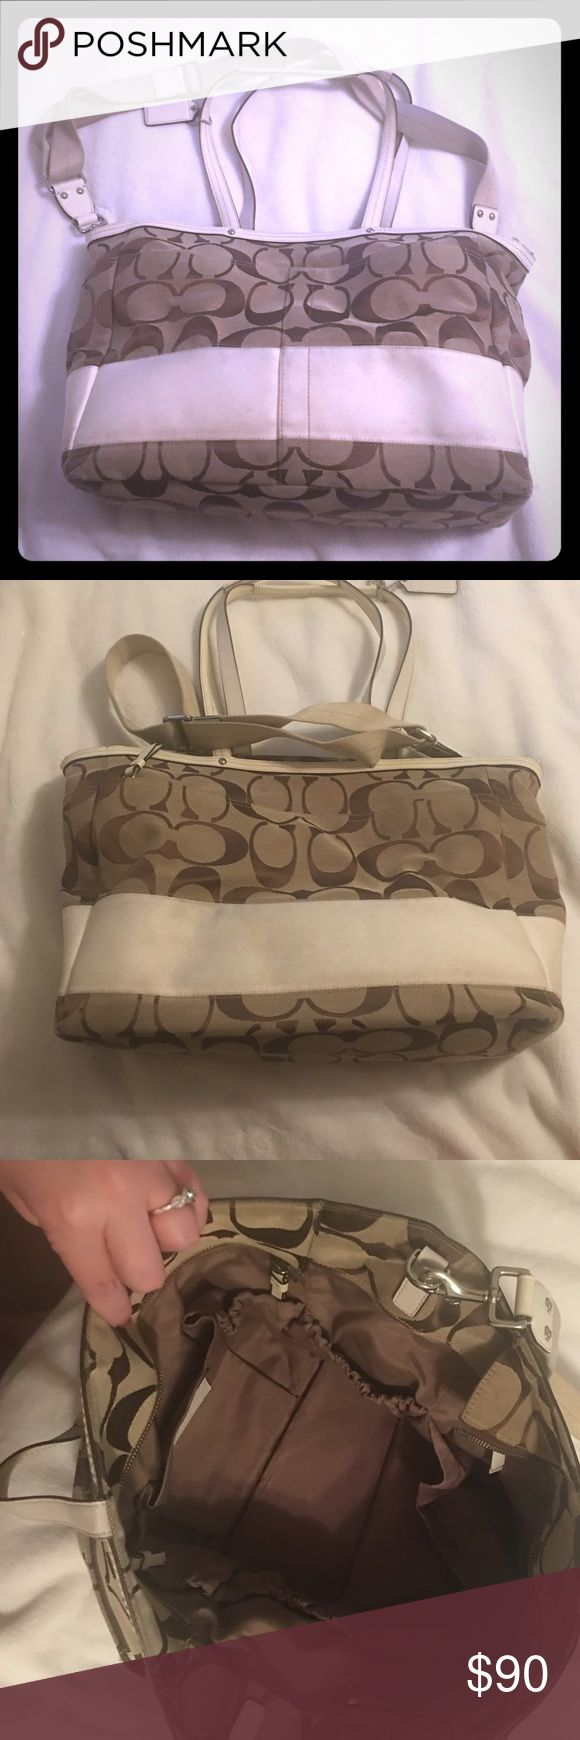 Coach diaper bag Coach diaper bag in signature print. Some staining on white accents and inside from use. Still has a lot of life left! Coach Bags Baby Bags